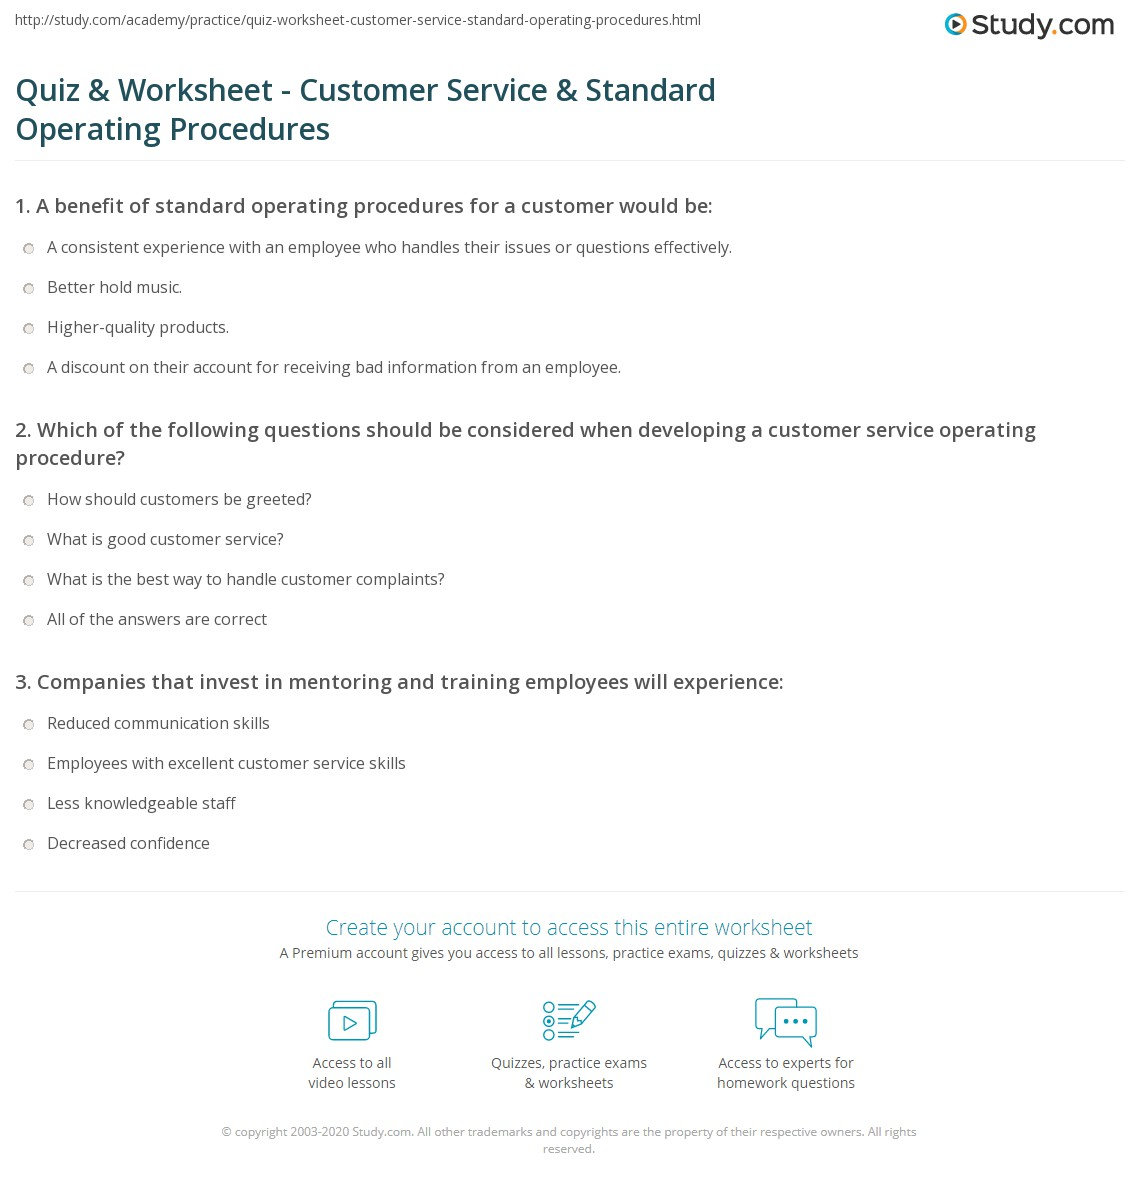 Writing customer service standards and procedures